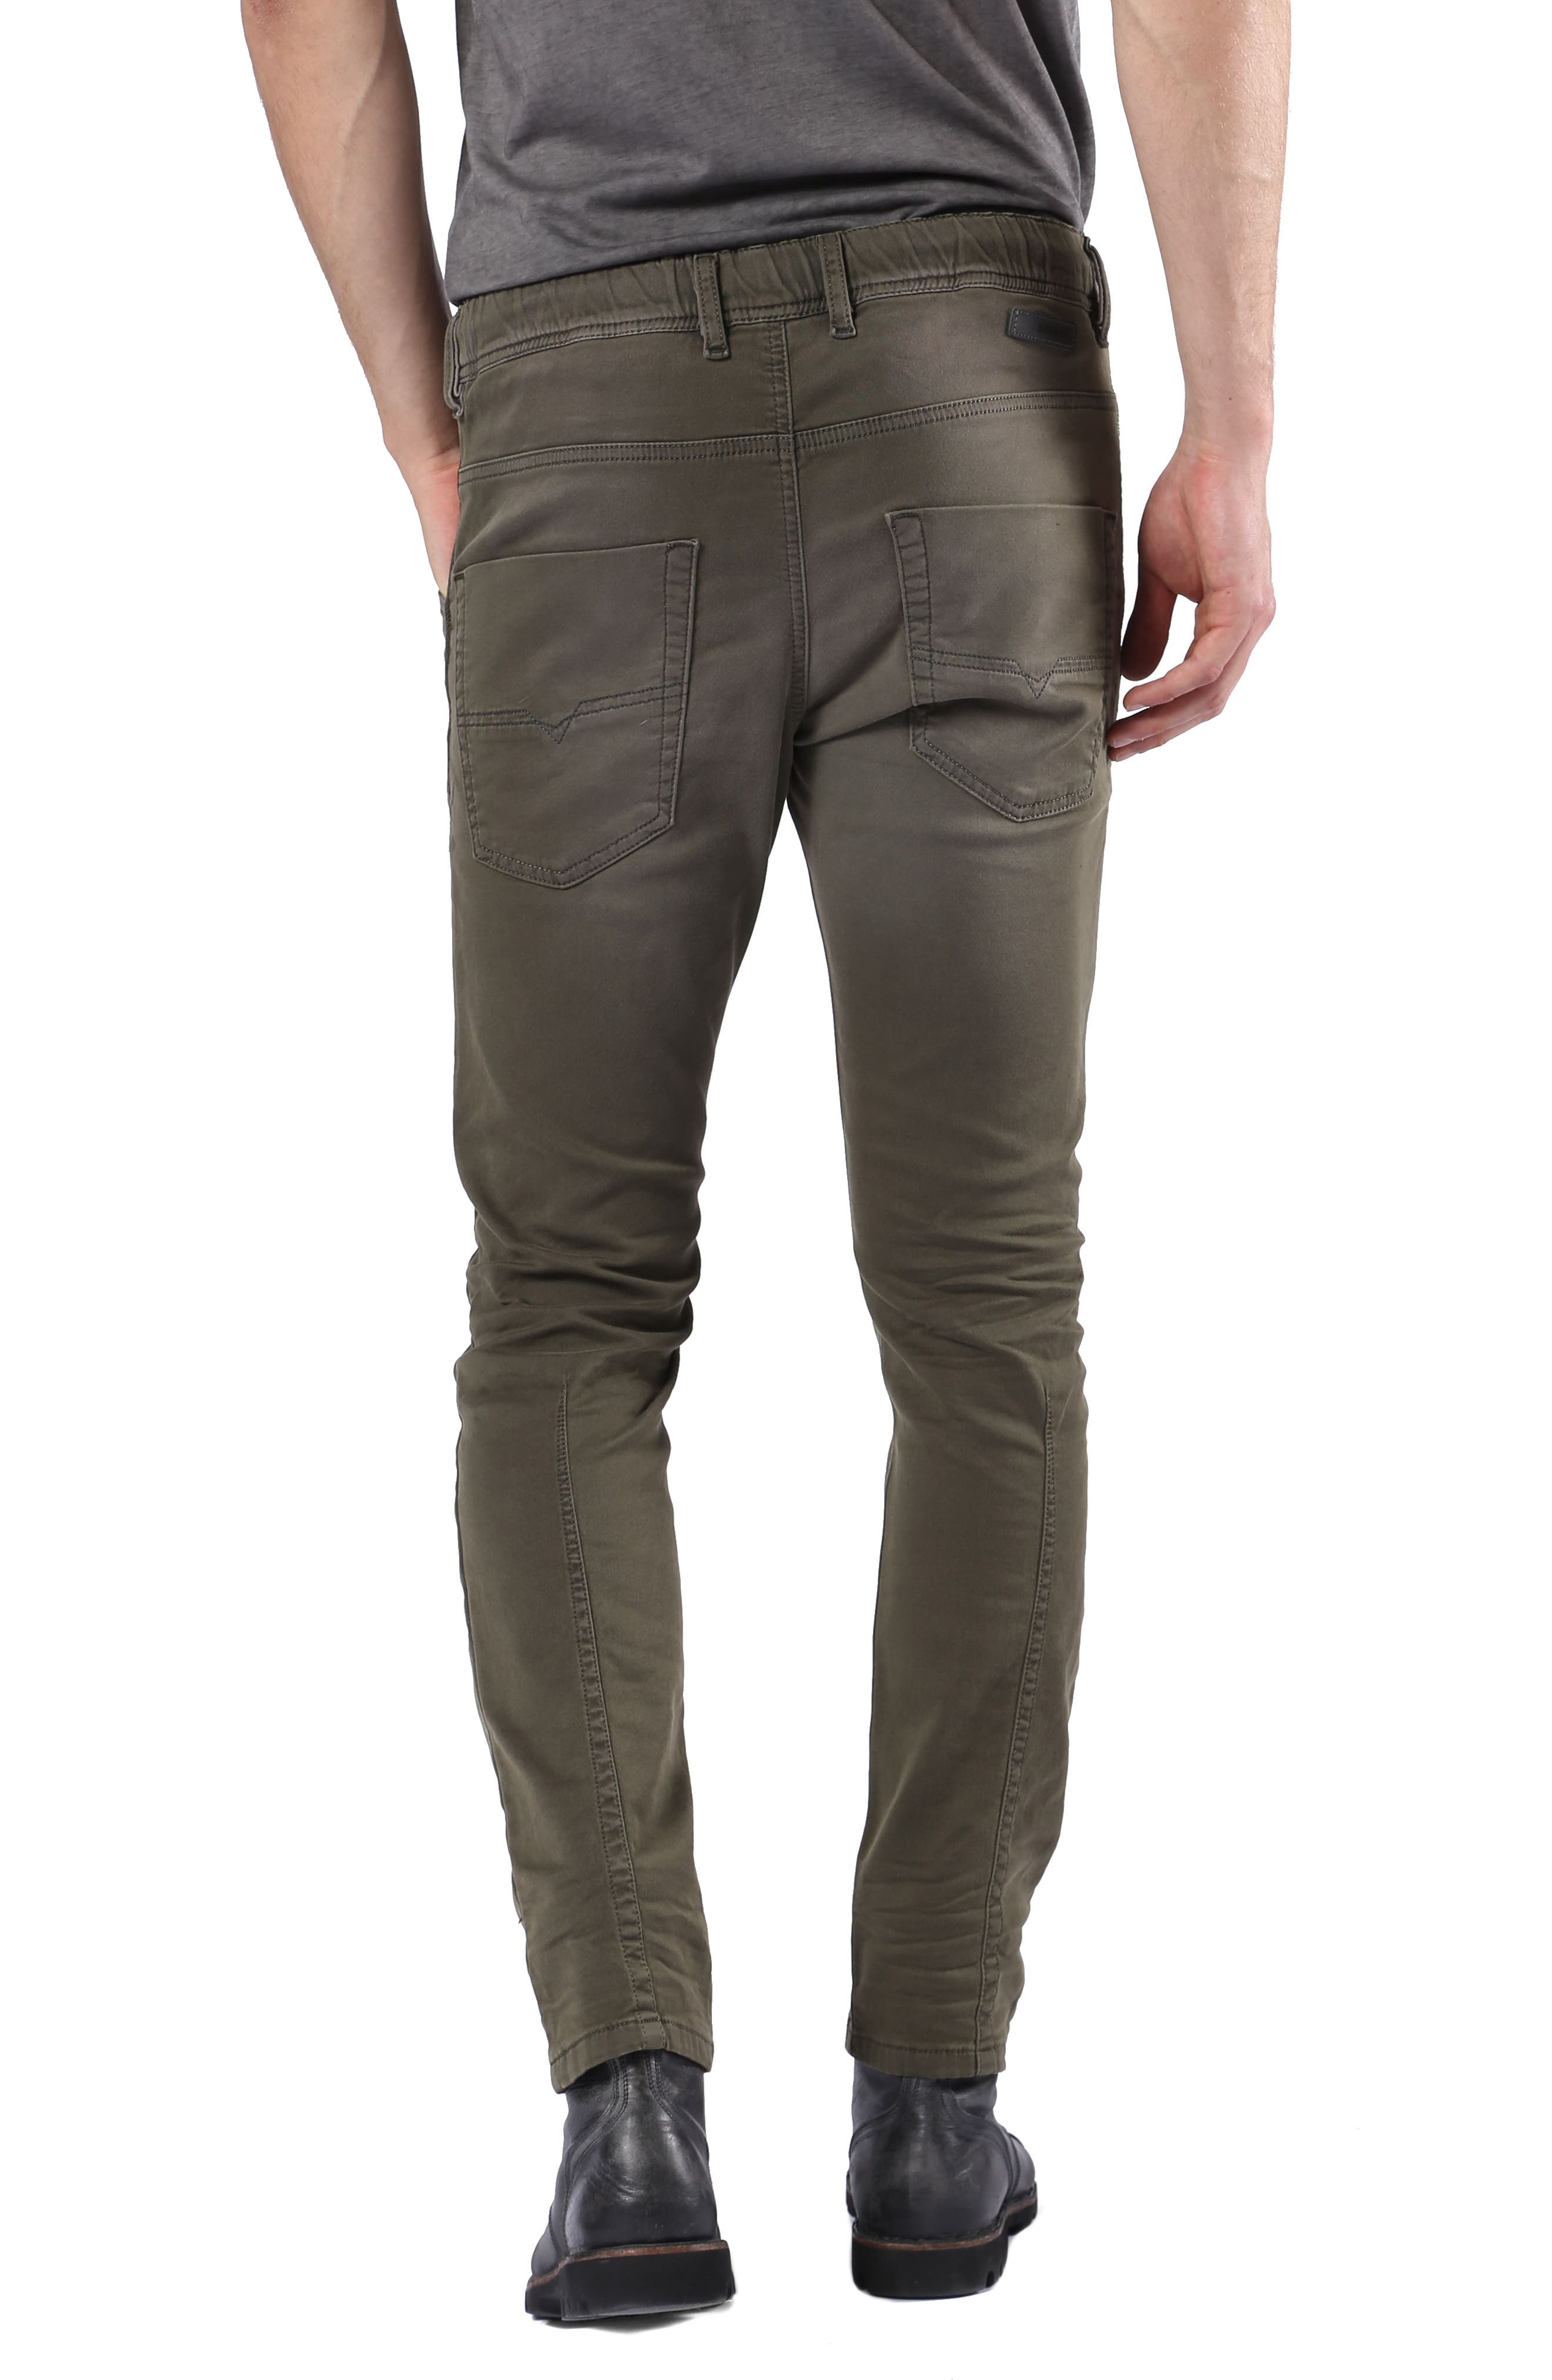 Krooley Slouchy Skinny Fit Jeans,                             Alternate thumbnail 2, color,                             0670M